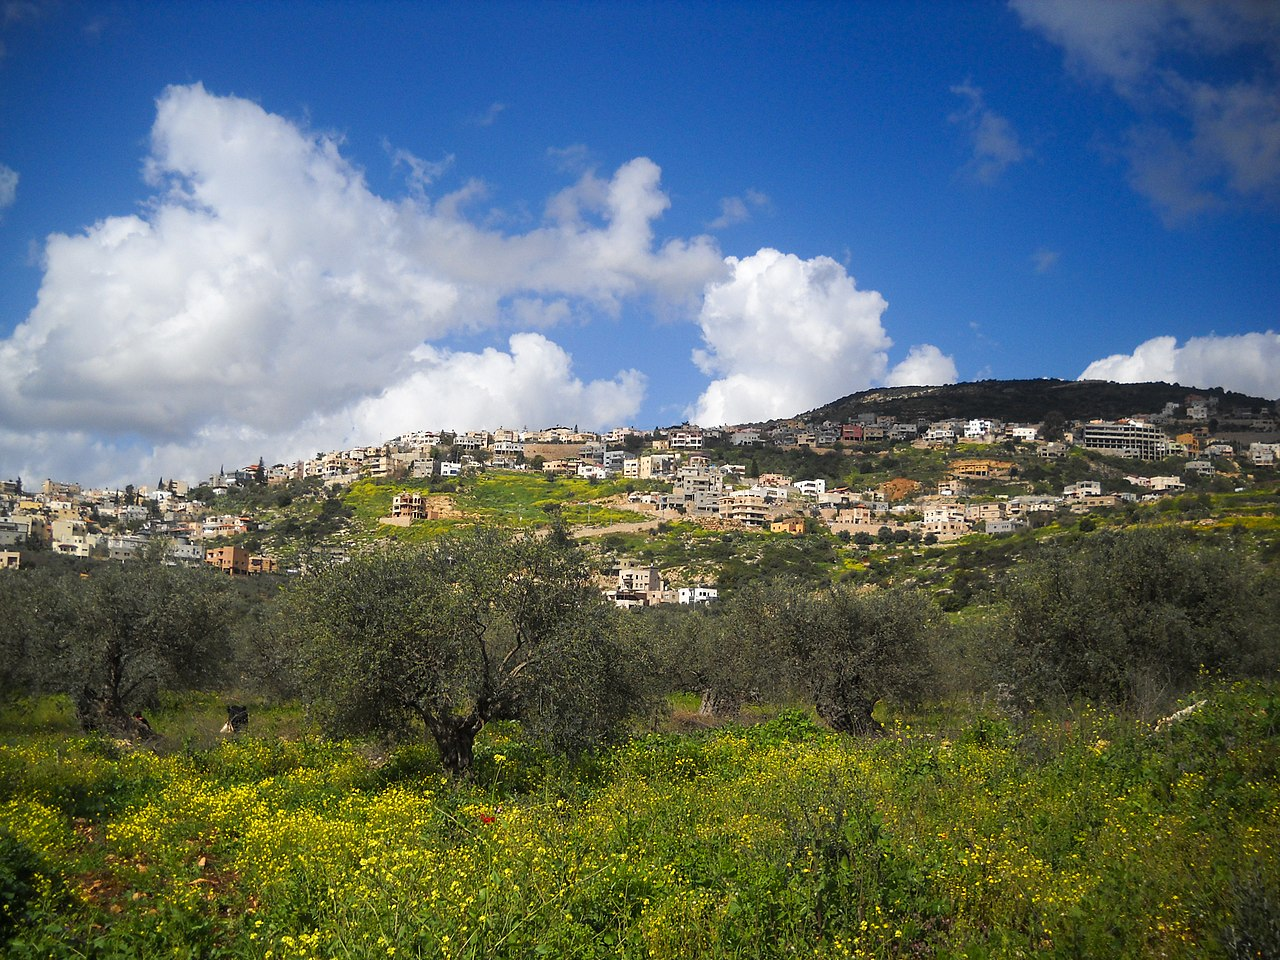 1280px-PikiWiki_Israel_29762_Maghar_Village